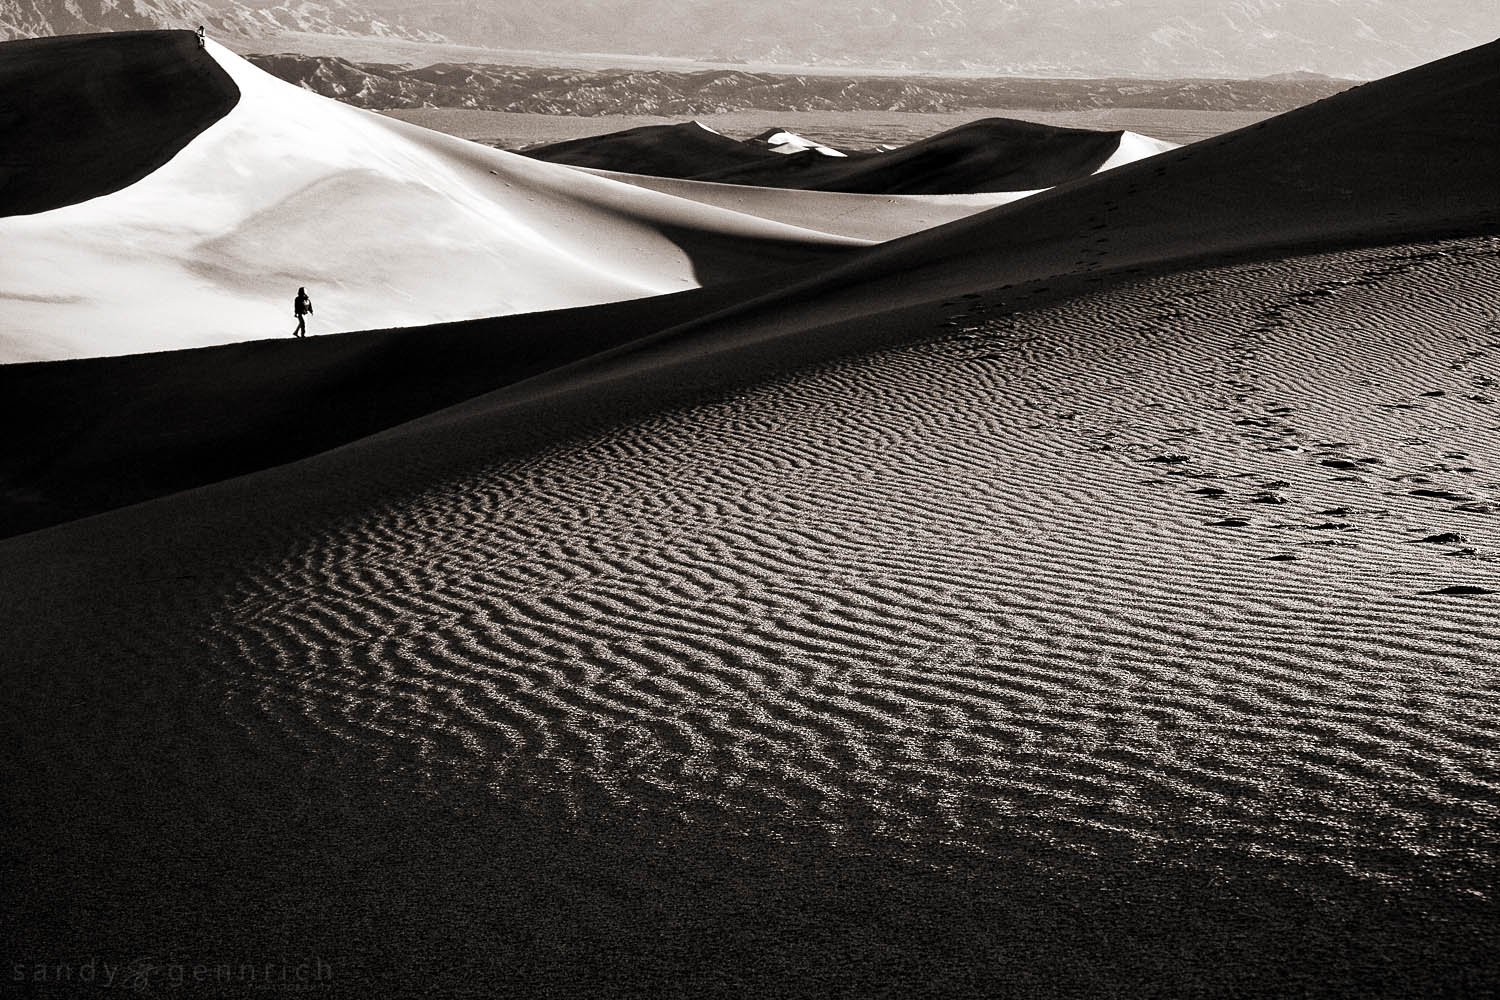 Dune Walking-Death Valley National Park